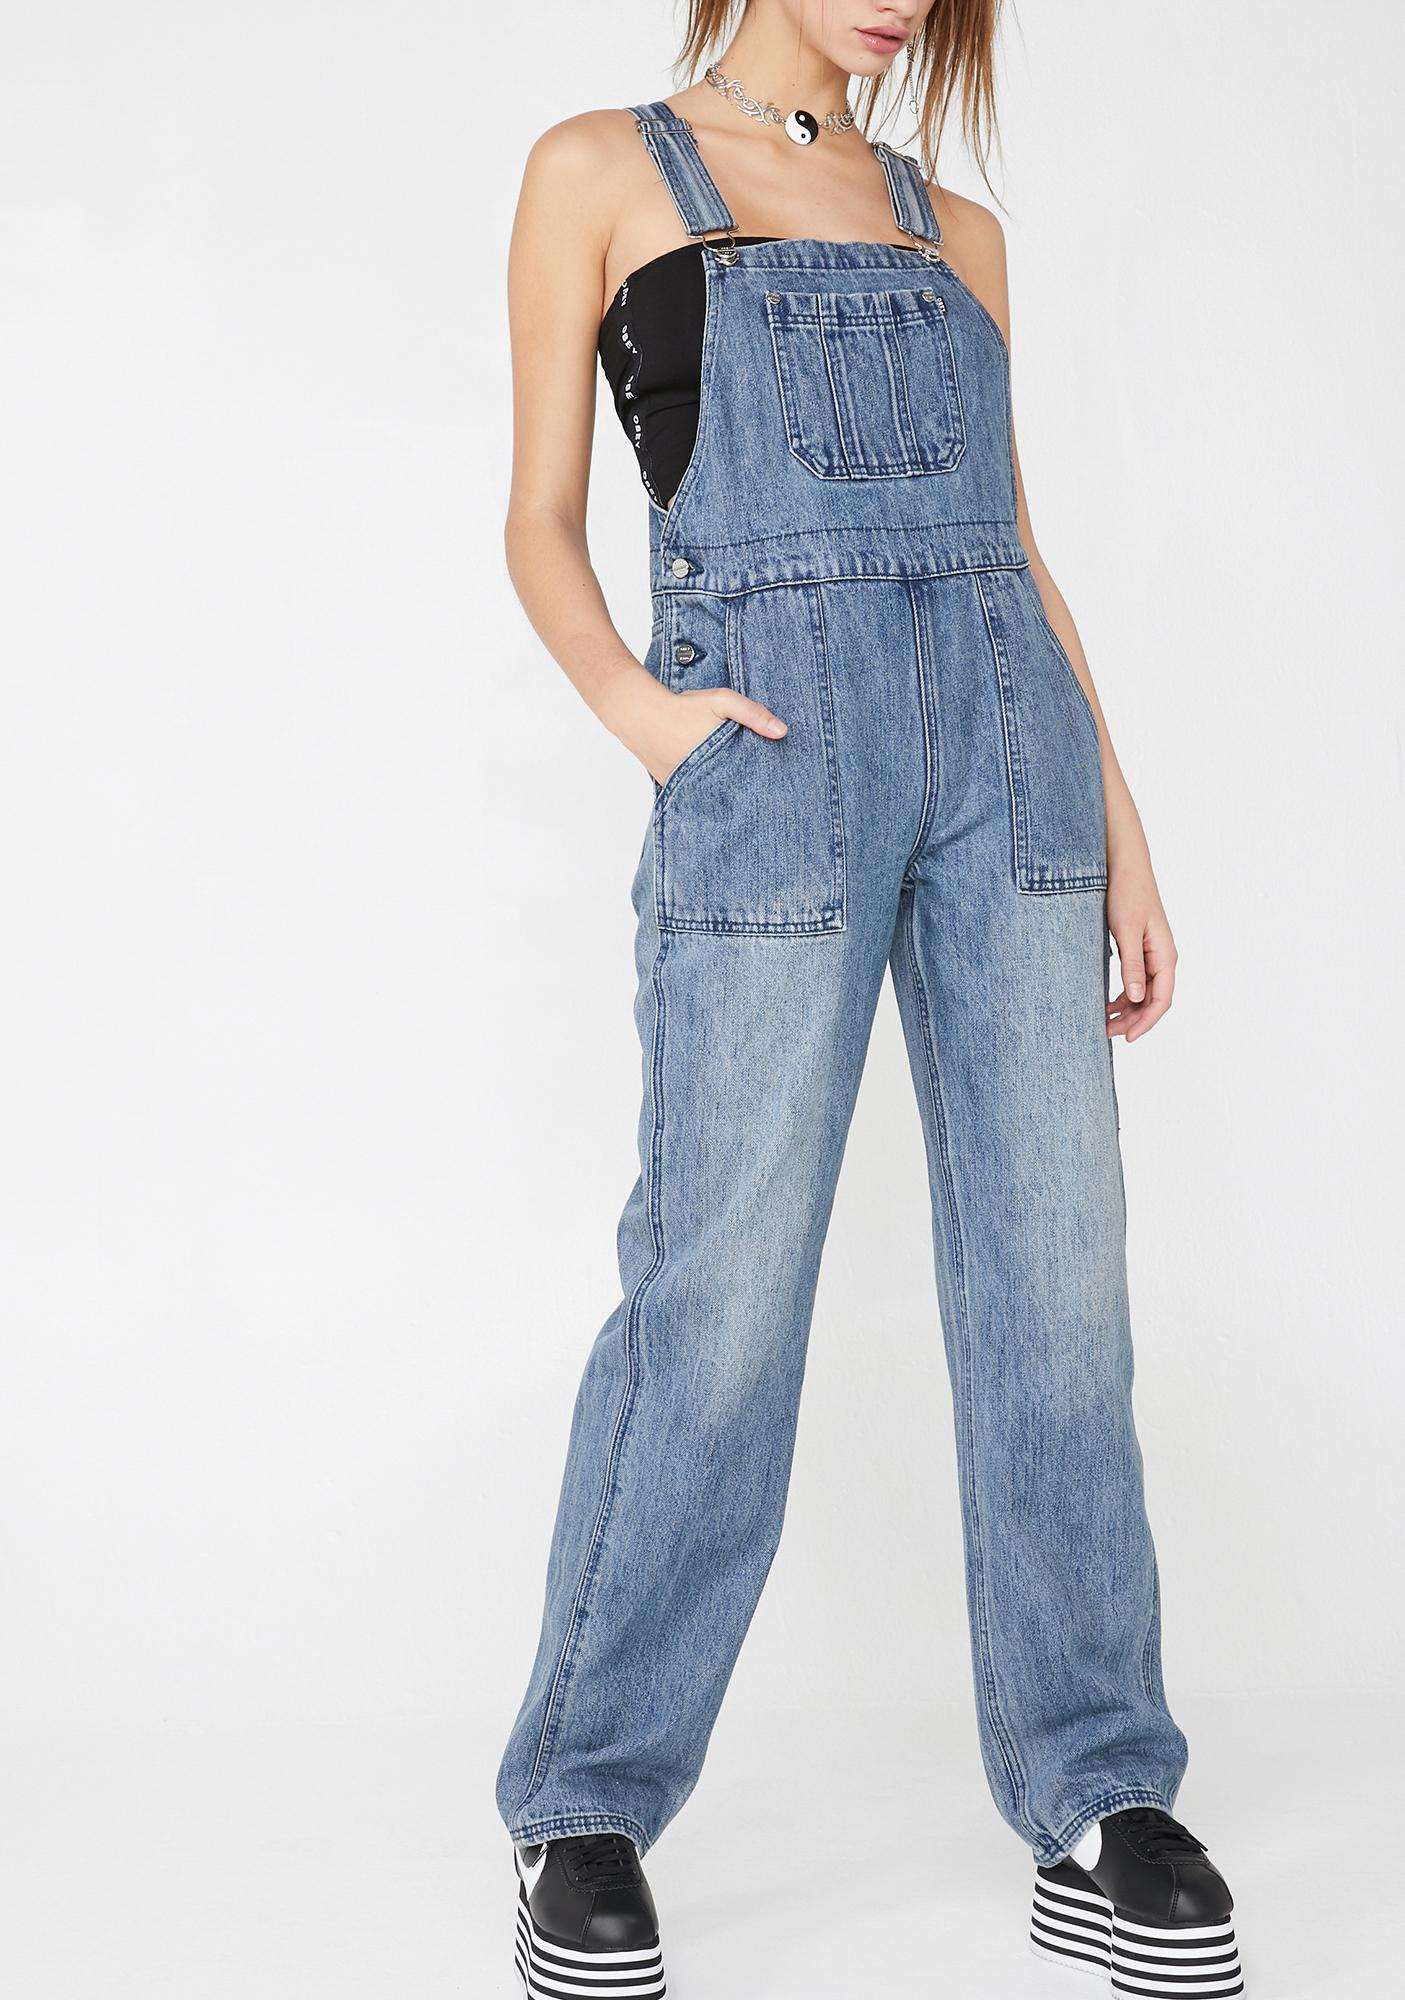 Obey Vandal Overalls